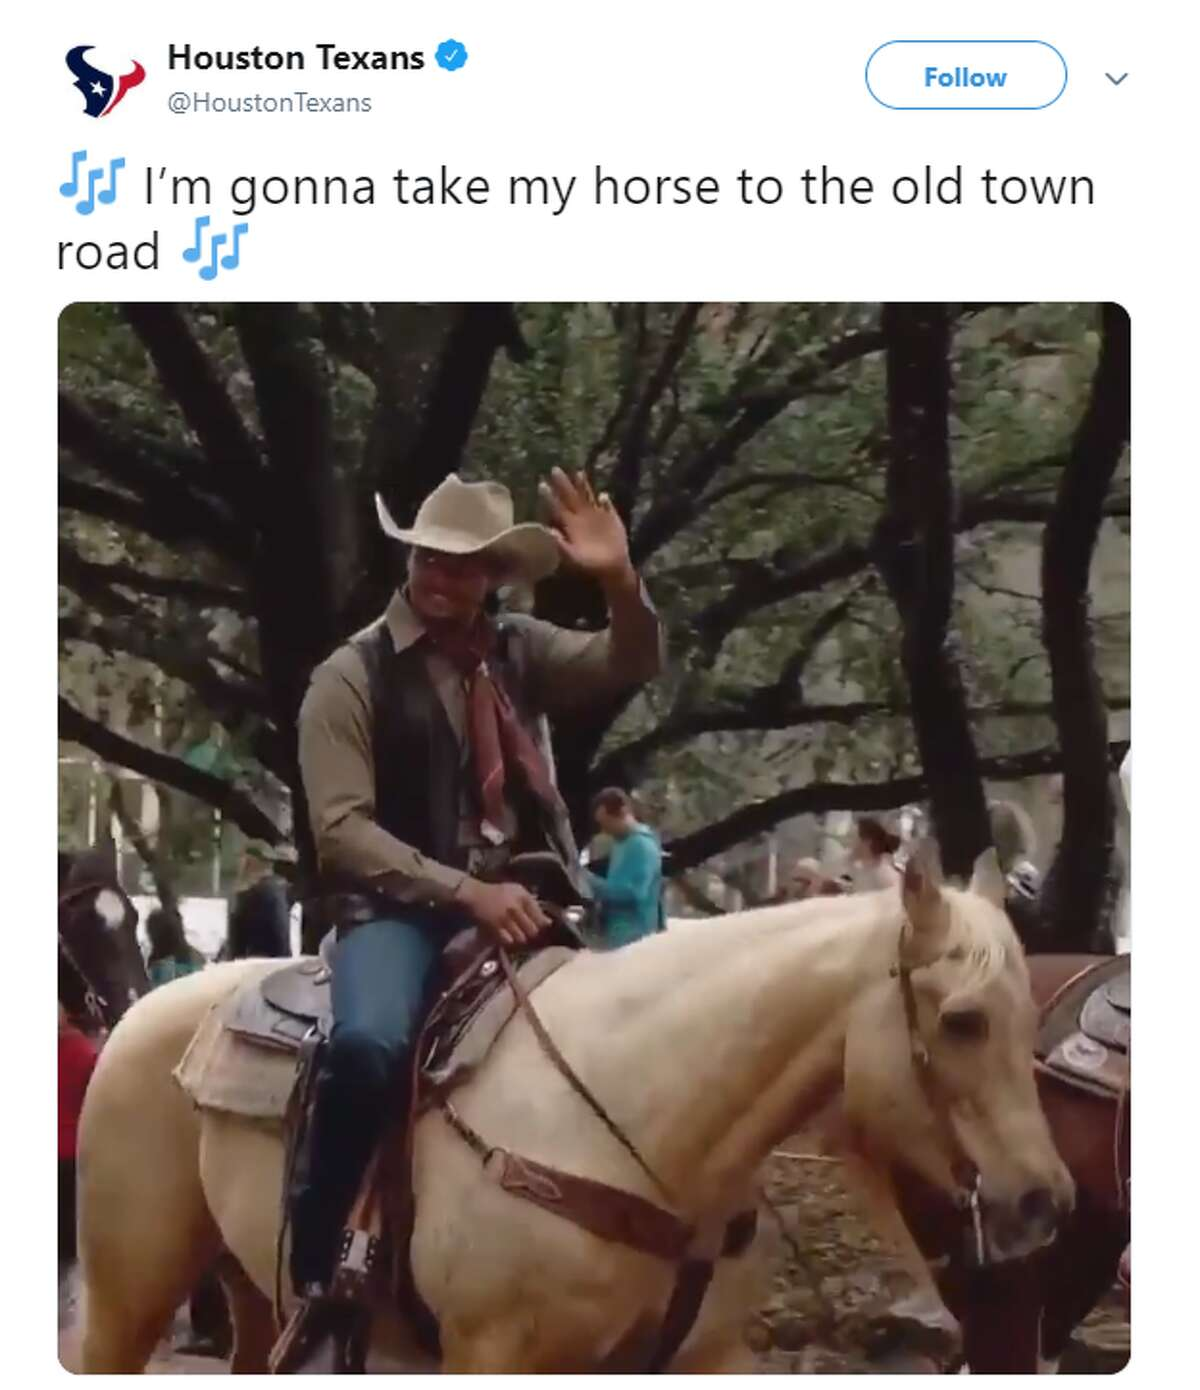 Source: Twitter Browse through the images for some of the best memes and reactions to the Old Town Road Remix.